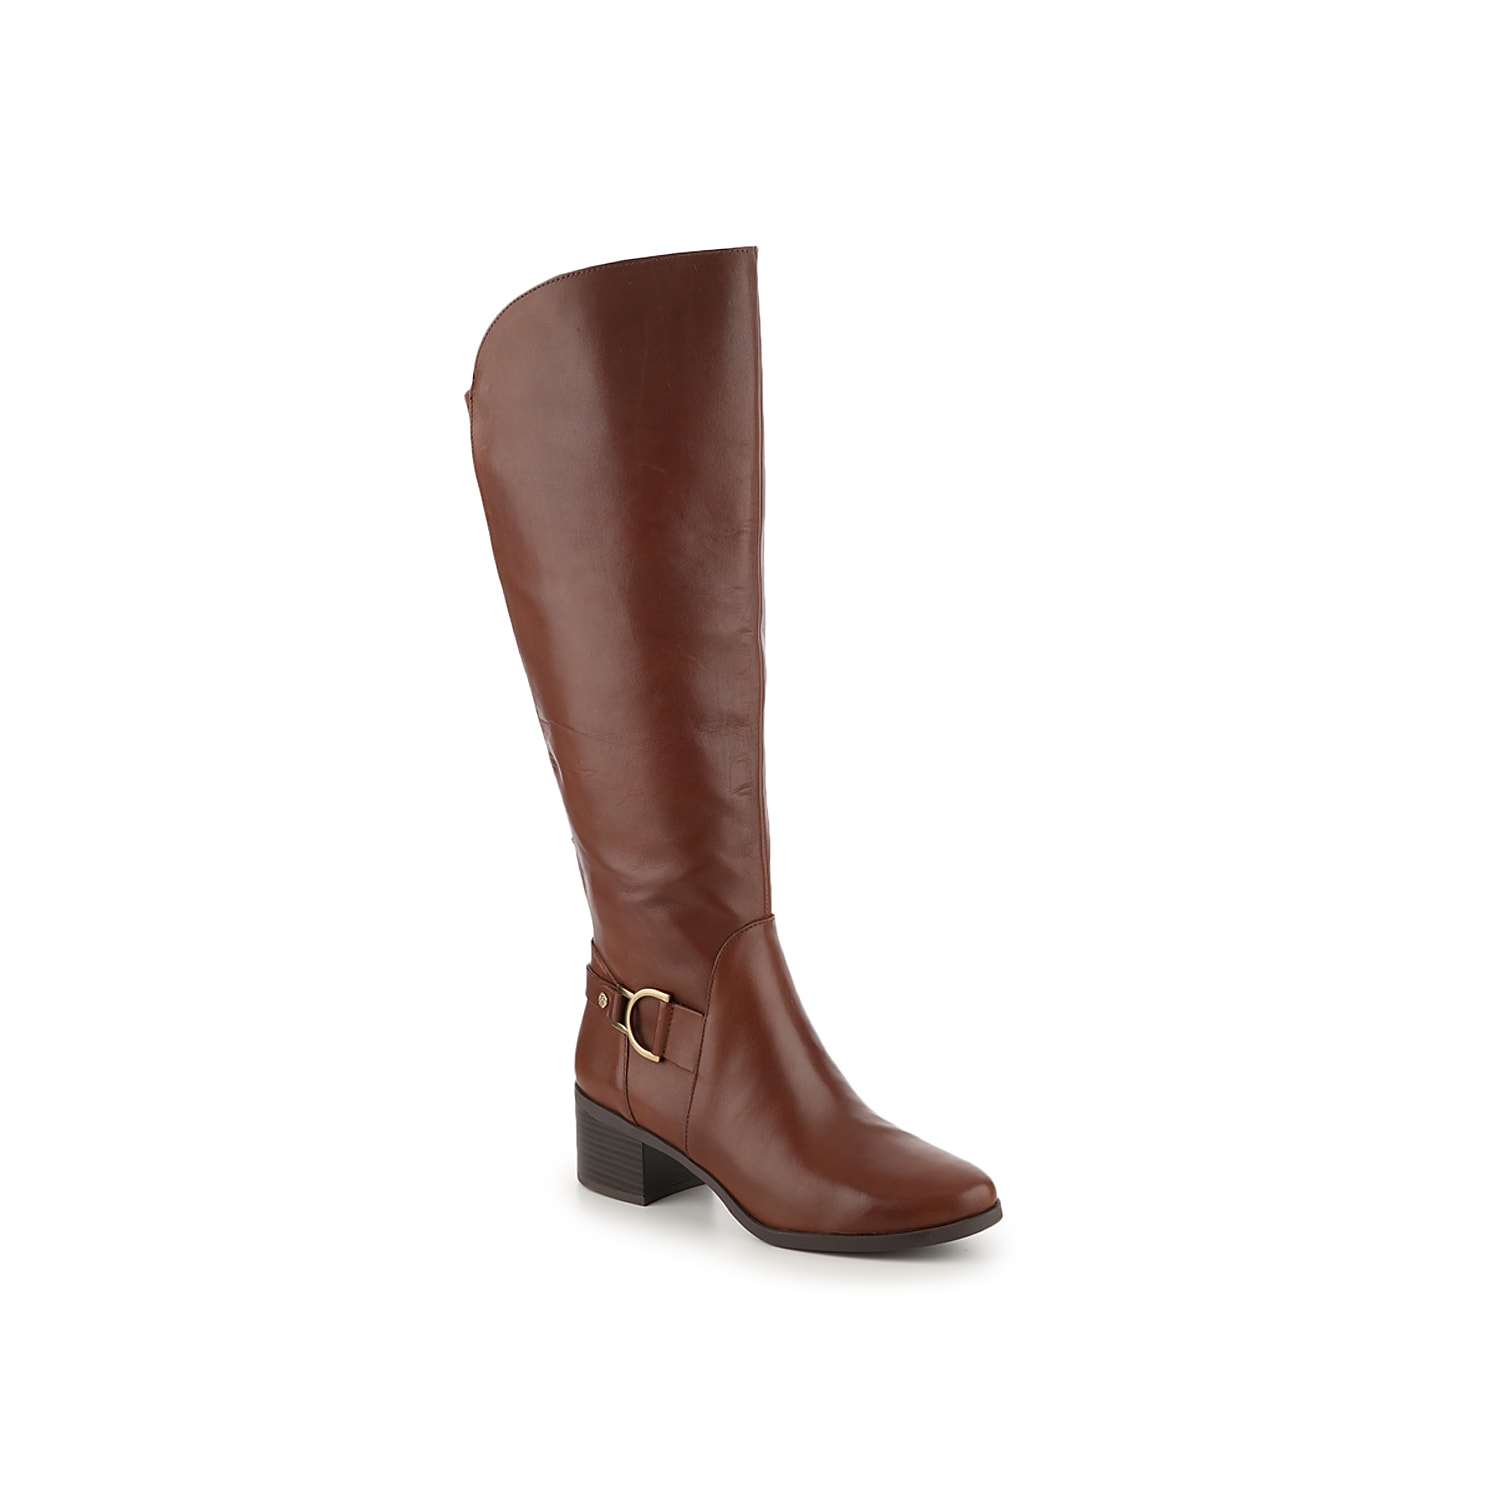 The Jamee riding boot from Anne Klein exudes sophistication with its hardware embellished strap and smooth leather upper. This wide calf knee high boot features a stretch fabric panel making this pair easy to wear with jeans or thick socks.Click here for Boot Measuring Guide.